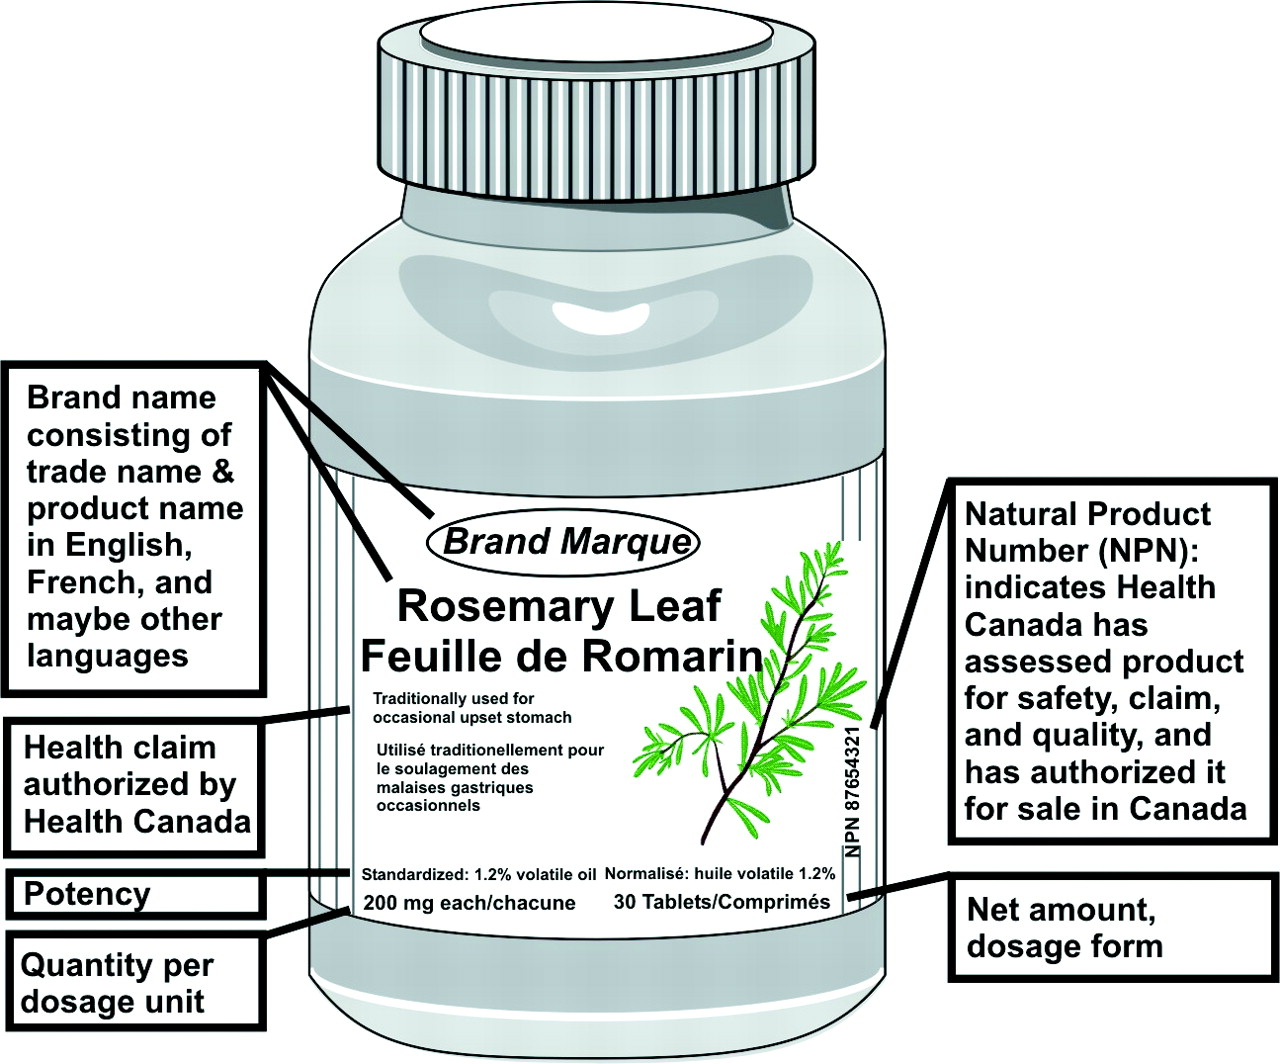 Natural health products: New labels, new credibility? | CMAJ